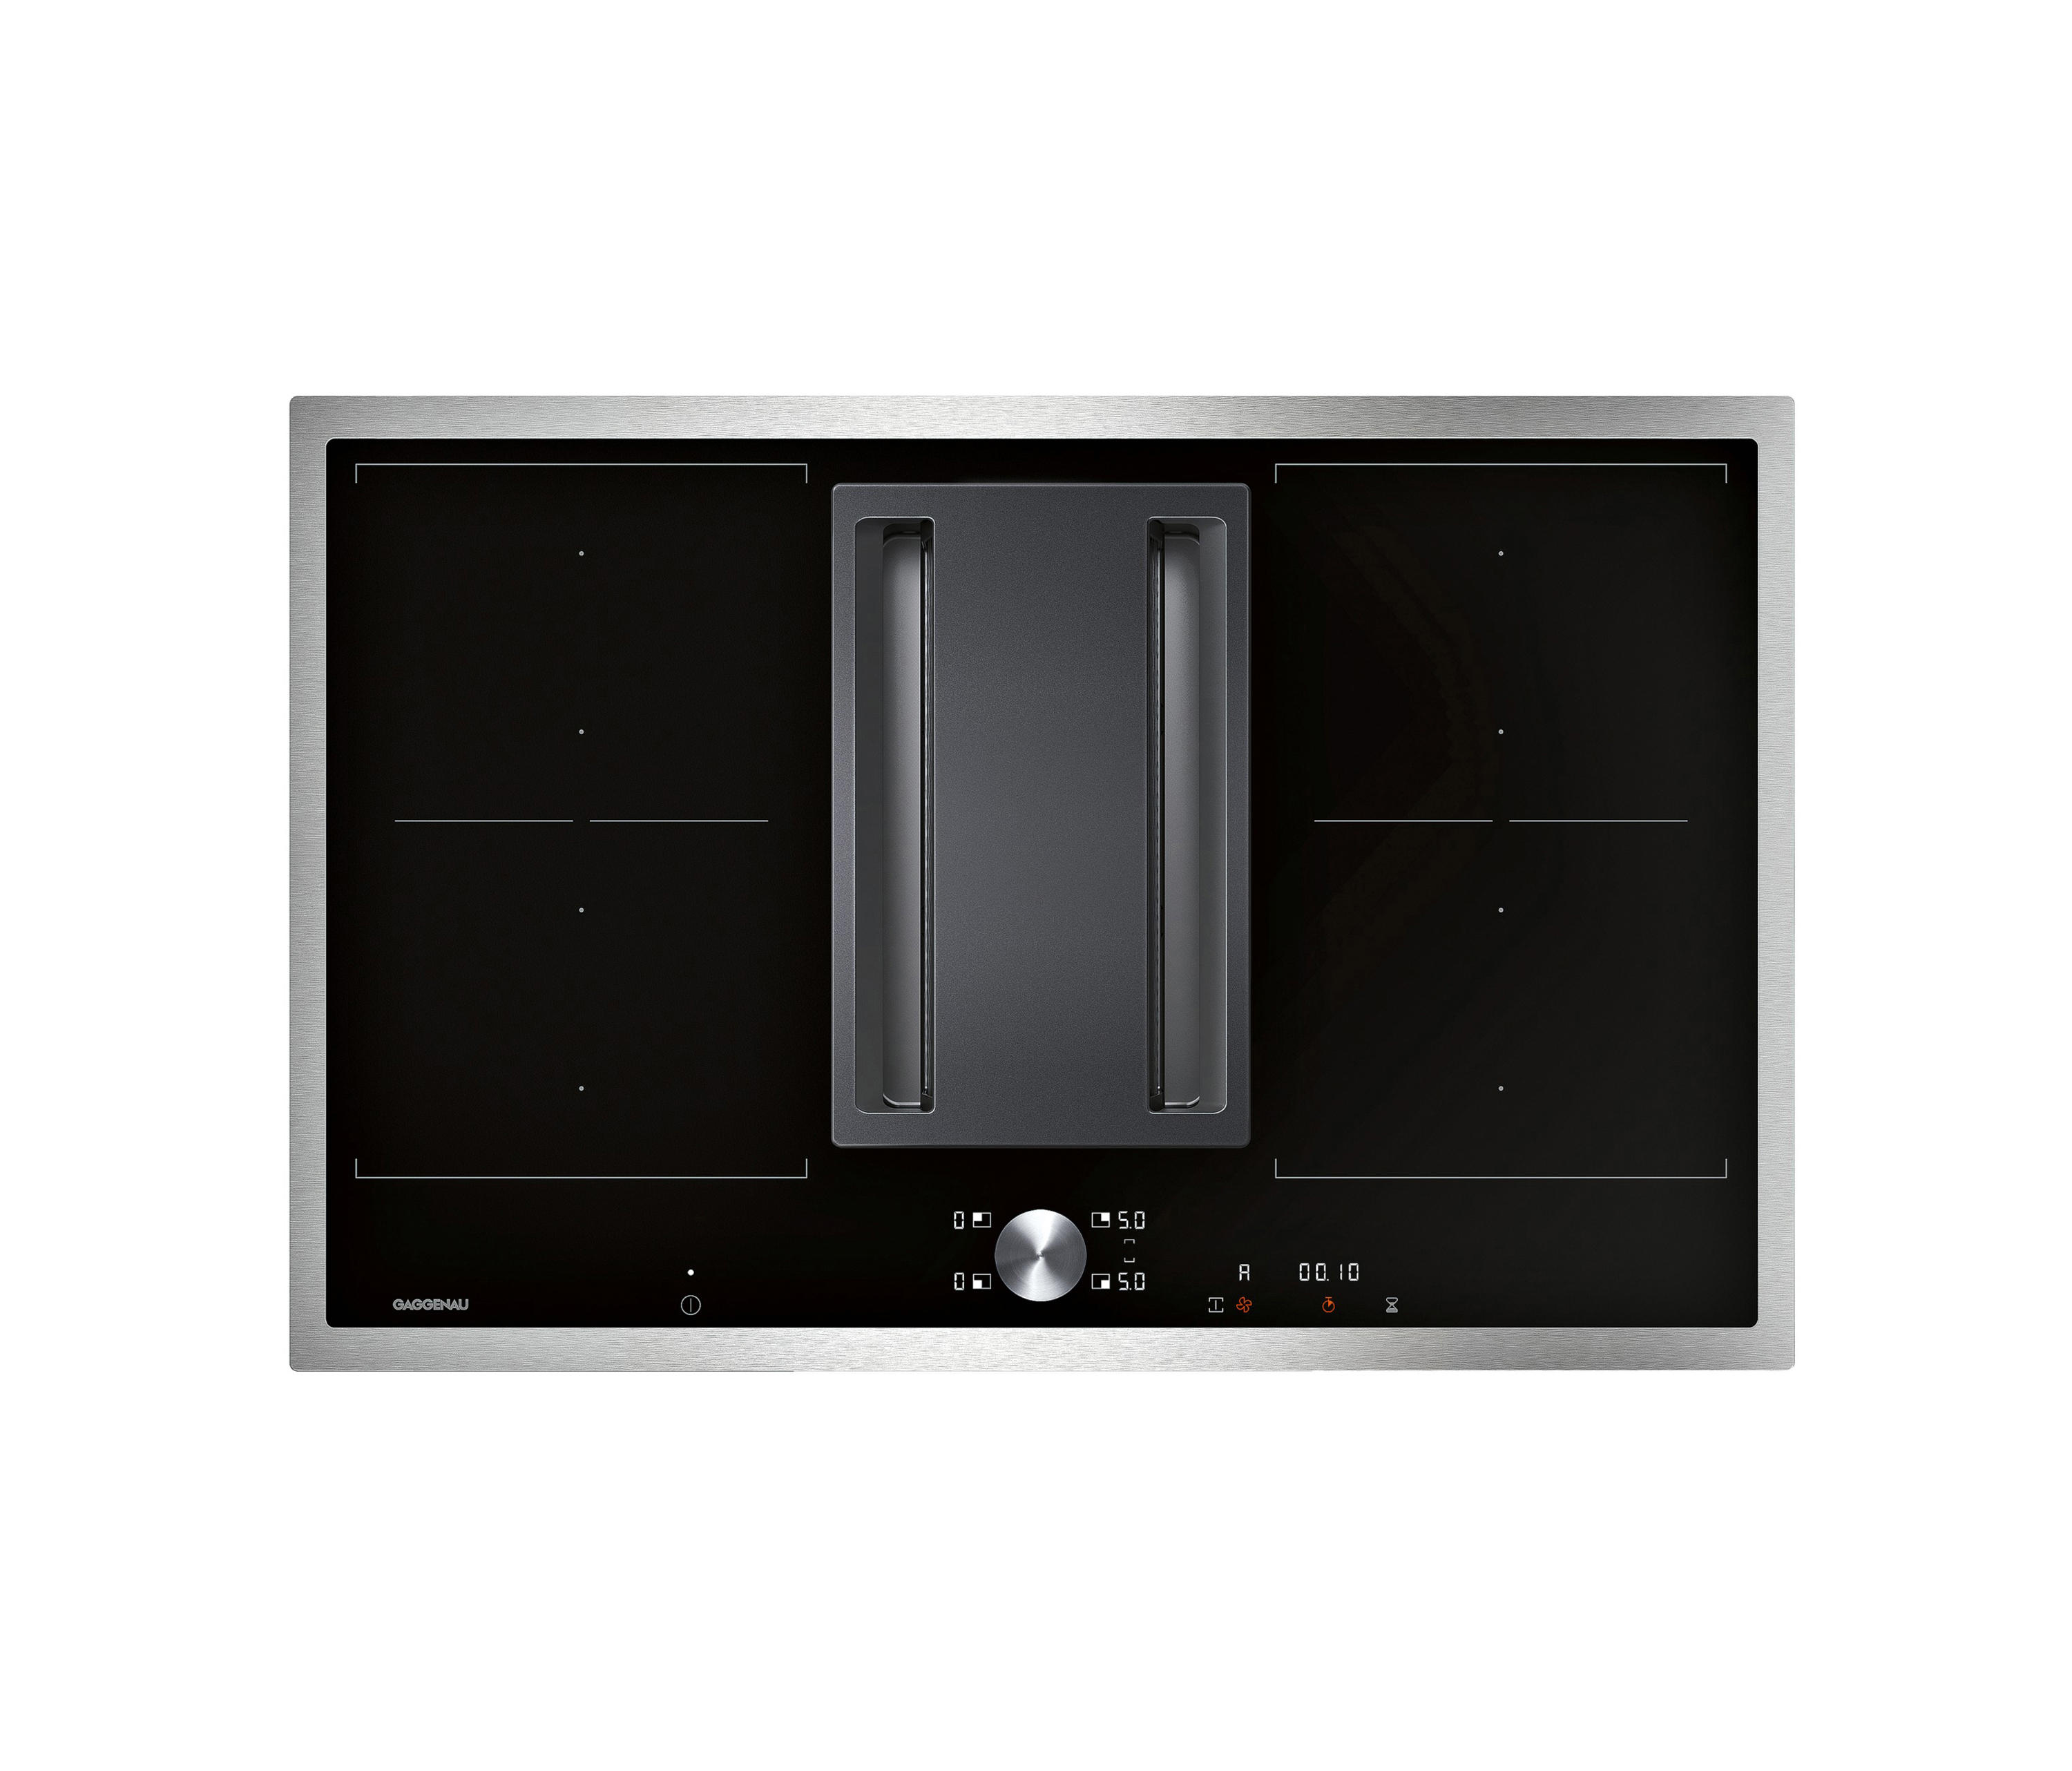 flex induction cooktop with integrated ventilation system